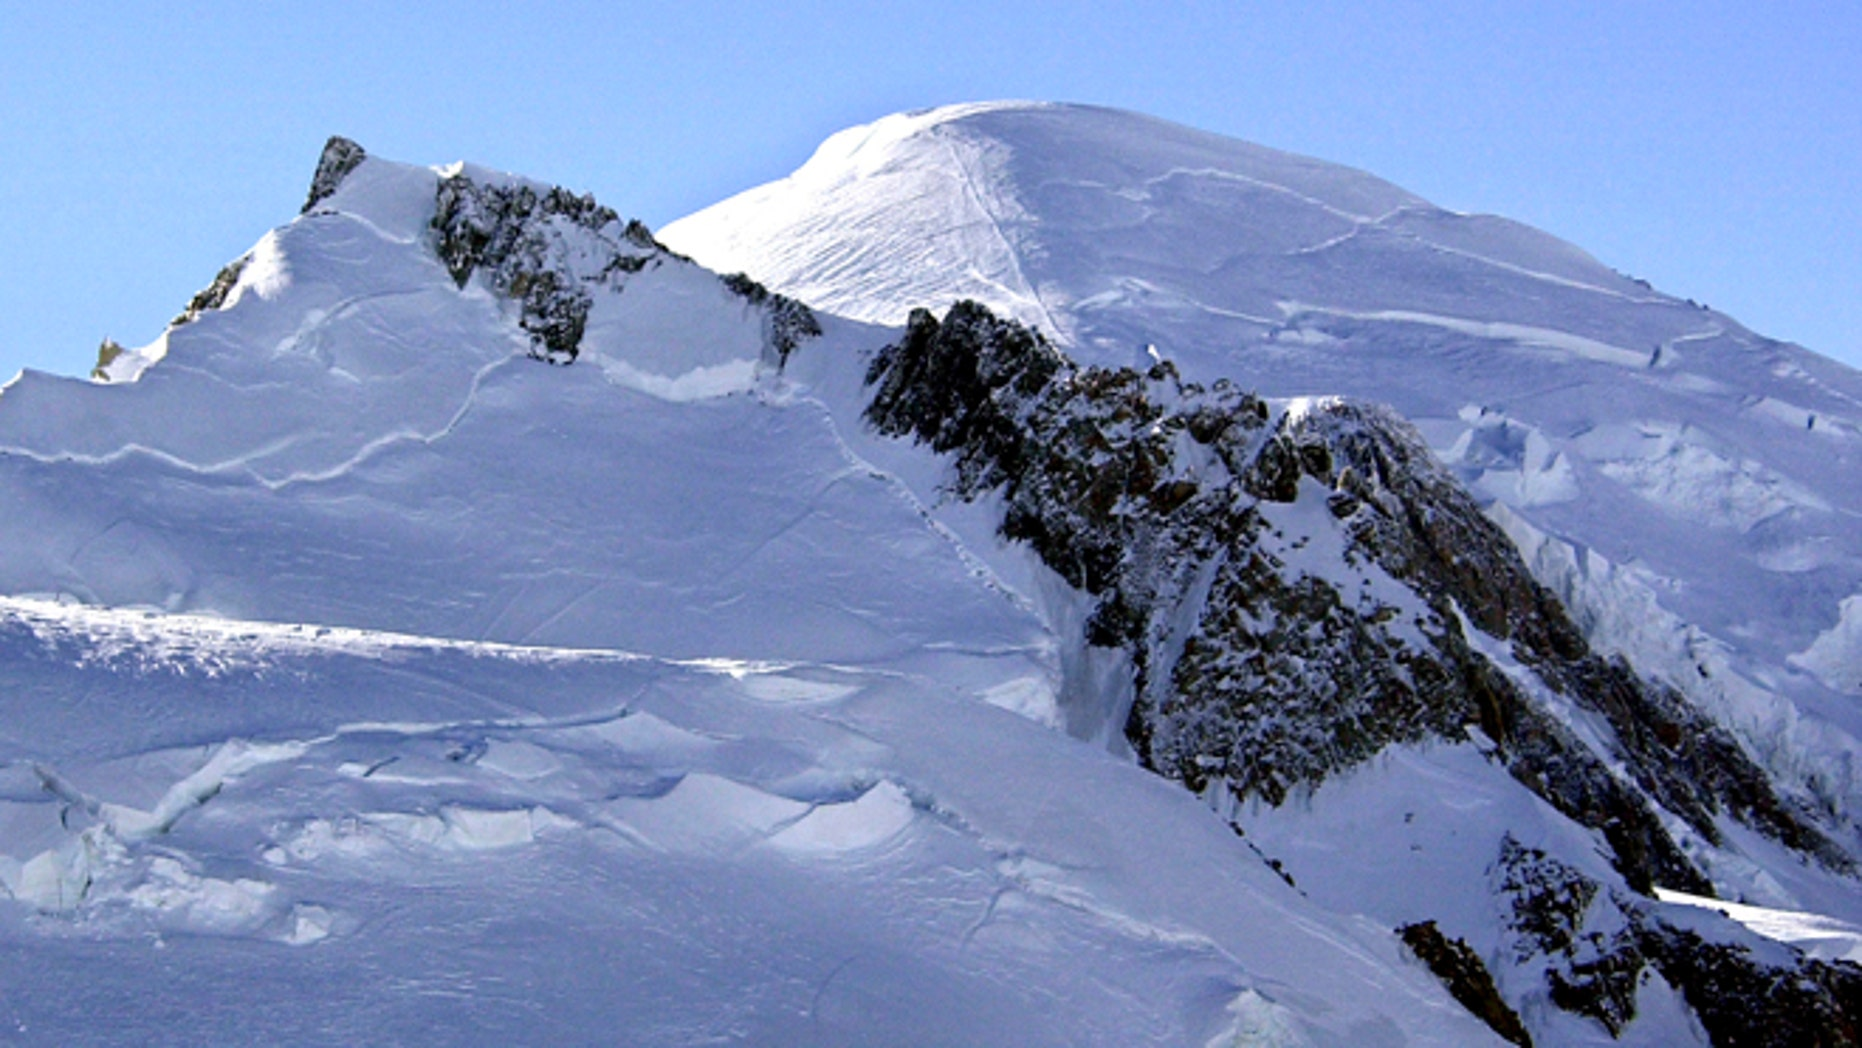 This file photo shows Mont Blanc, western Europe's highest mountain.